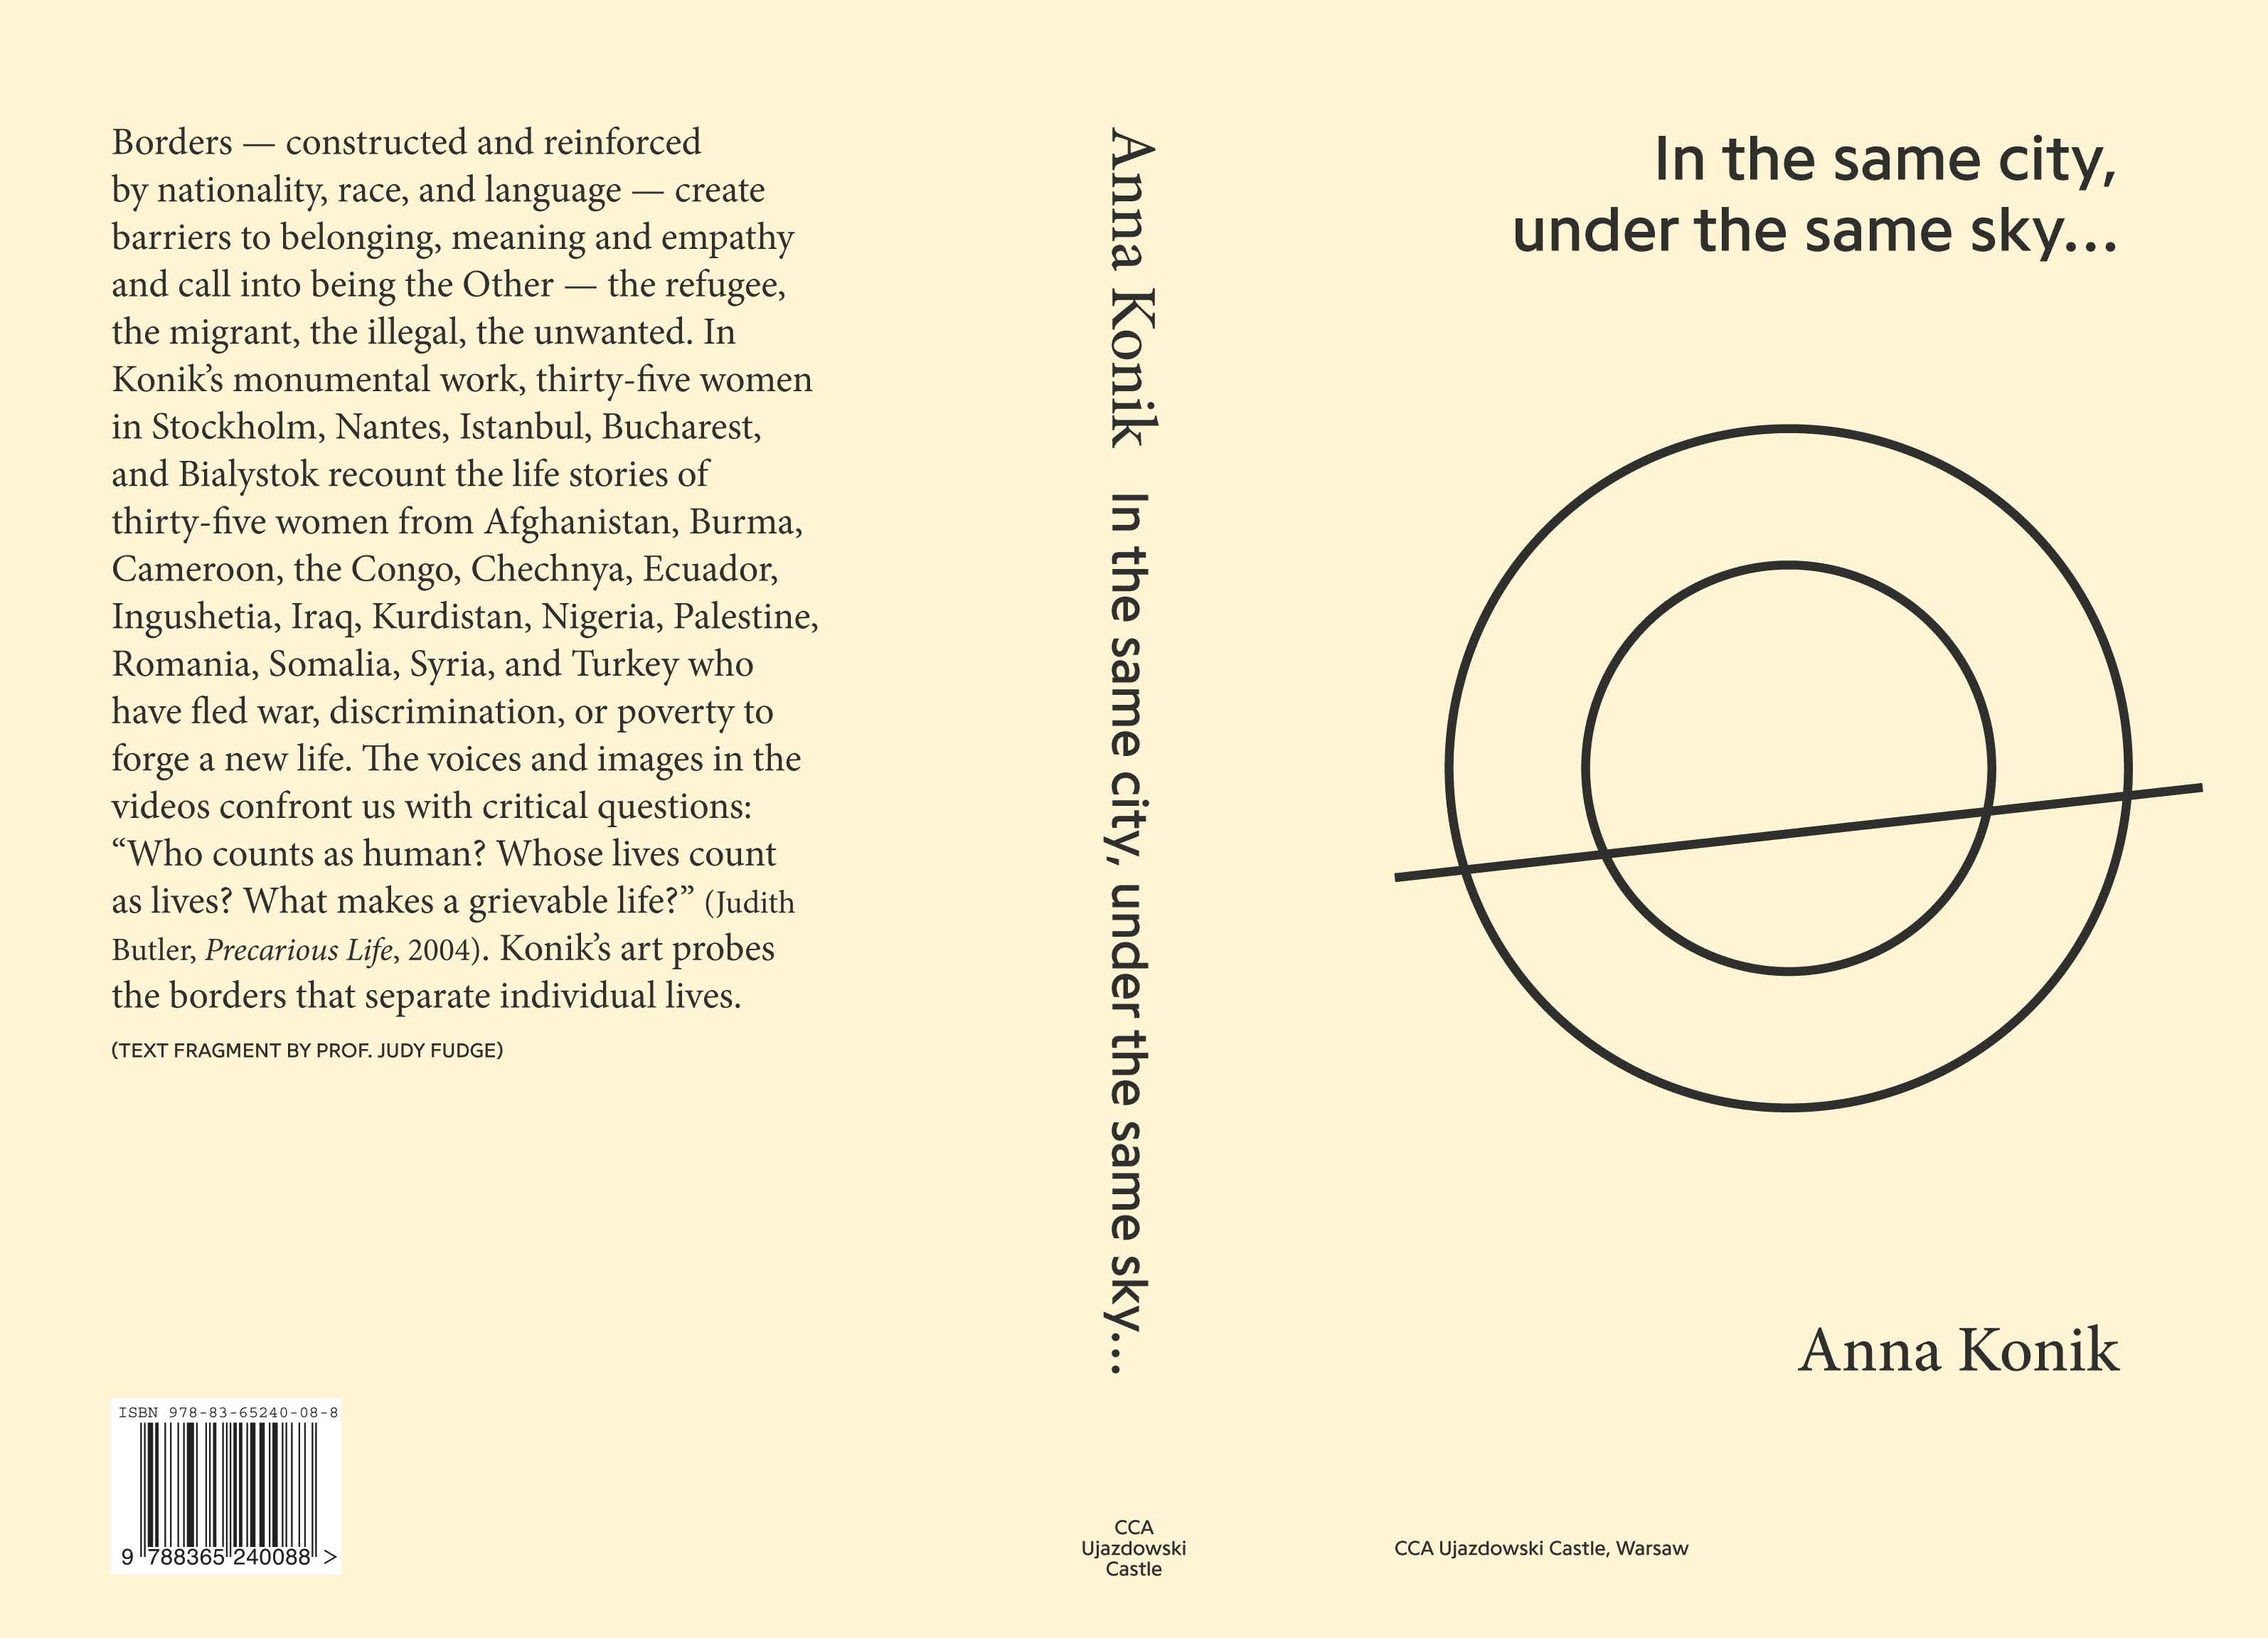 In the same city, under the same sky... (book cover ENG version)